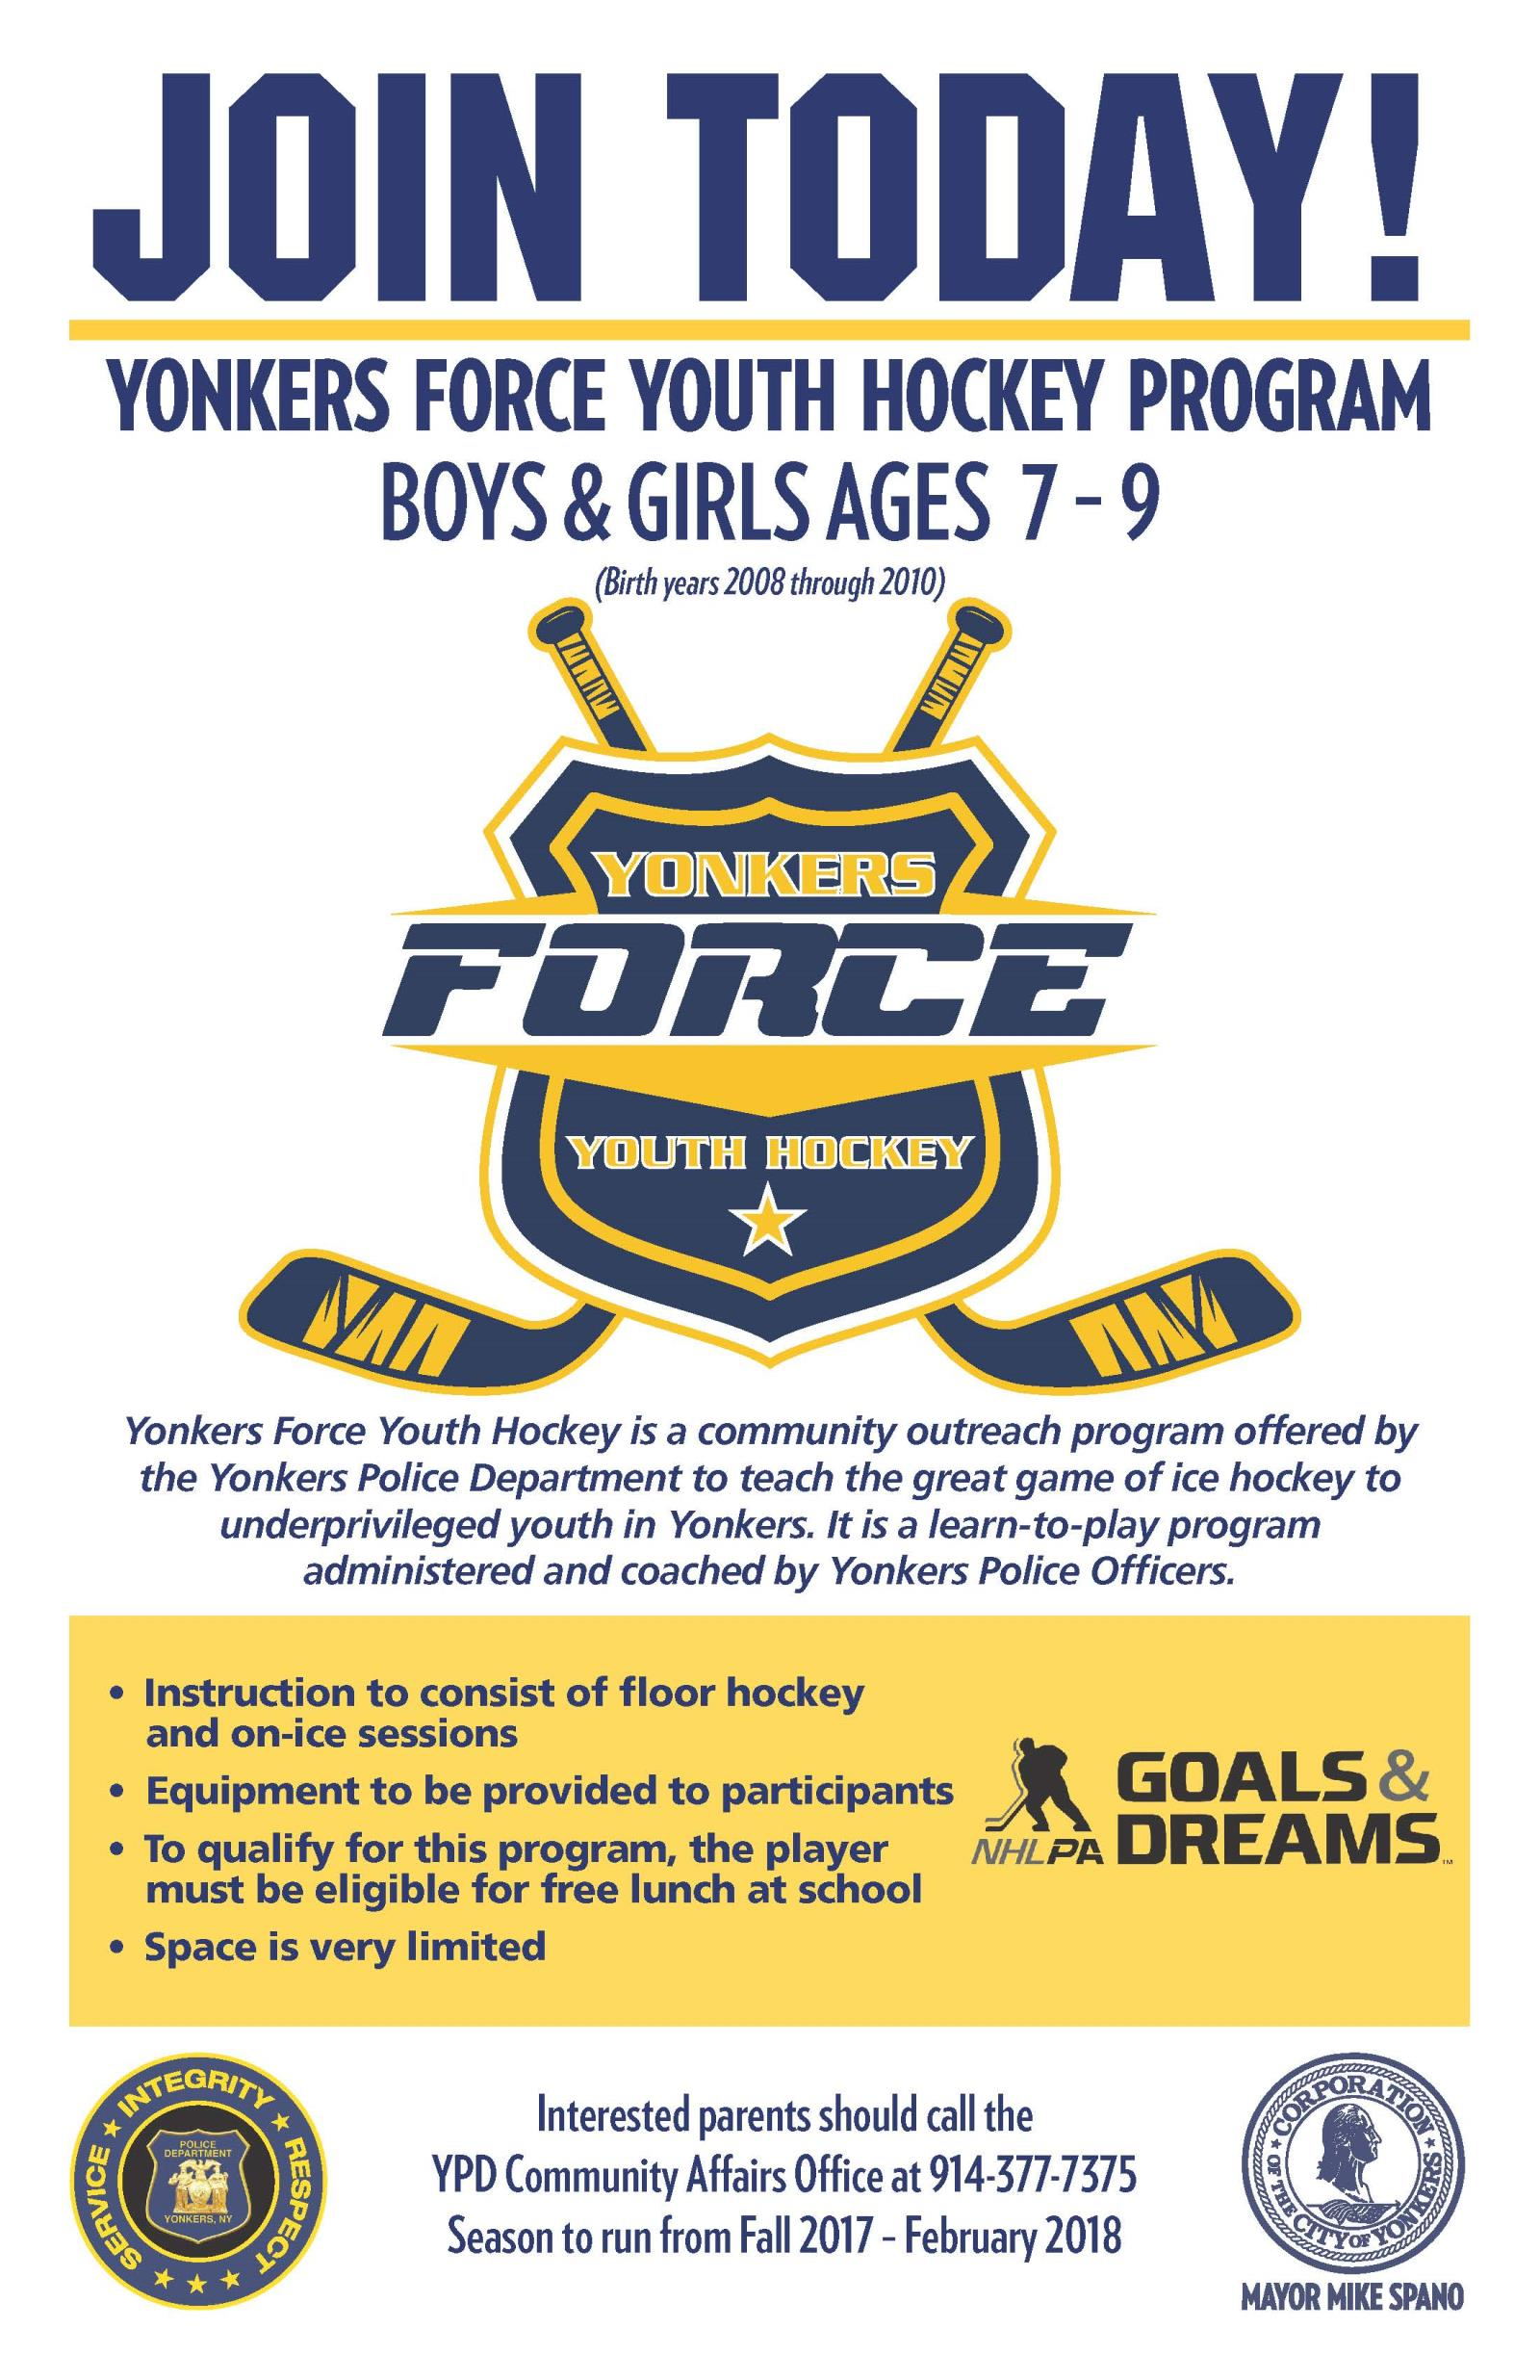 Yonkers Force Youth Hockey